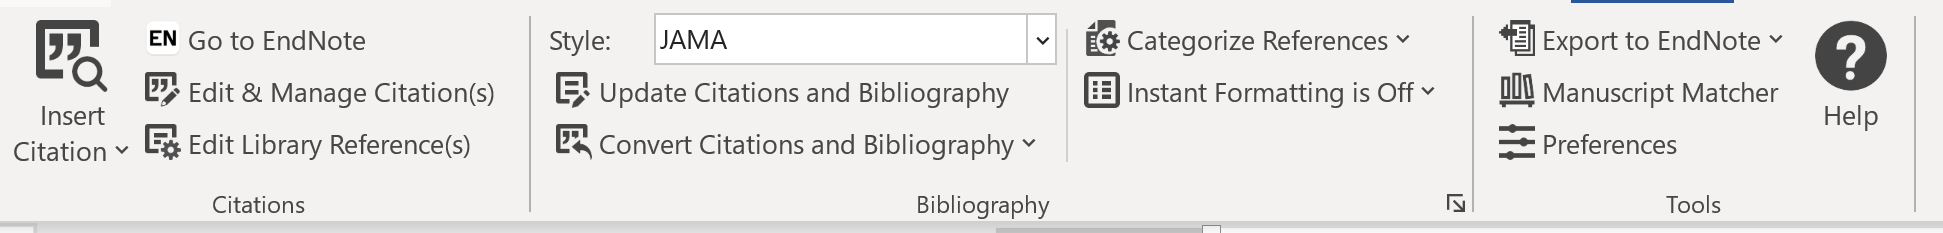 Word for Windows Cite While You Write Ribbon. Text on image: Insert Citation; Go to EndNote; Edit & Manage Citation(s); Edit Library Reference(s); Citations; Style; JAMA; Update Citations and Bibliography; Convert Citations and Bibliography; Bibliography; Categorize References; Instant Formatting is Off; Export to EndNote; Manuscript Matcher; Preferences; Help; Tools